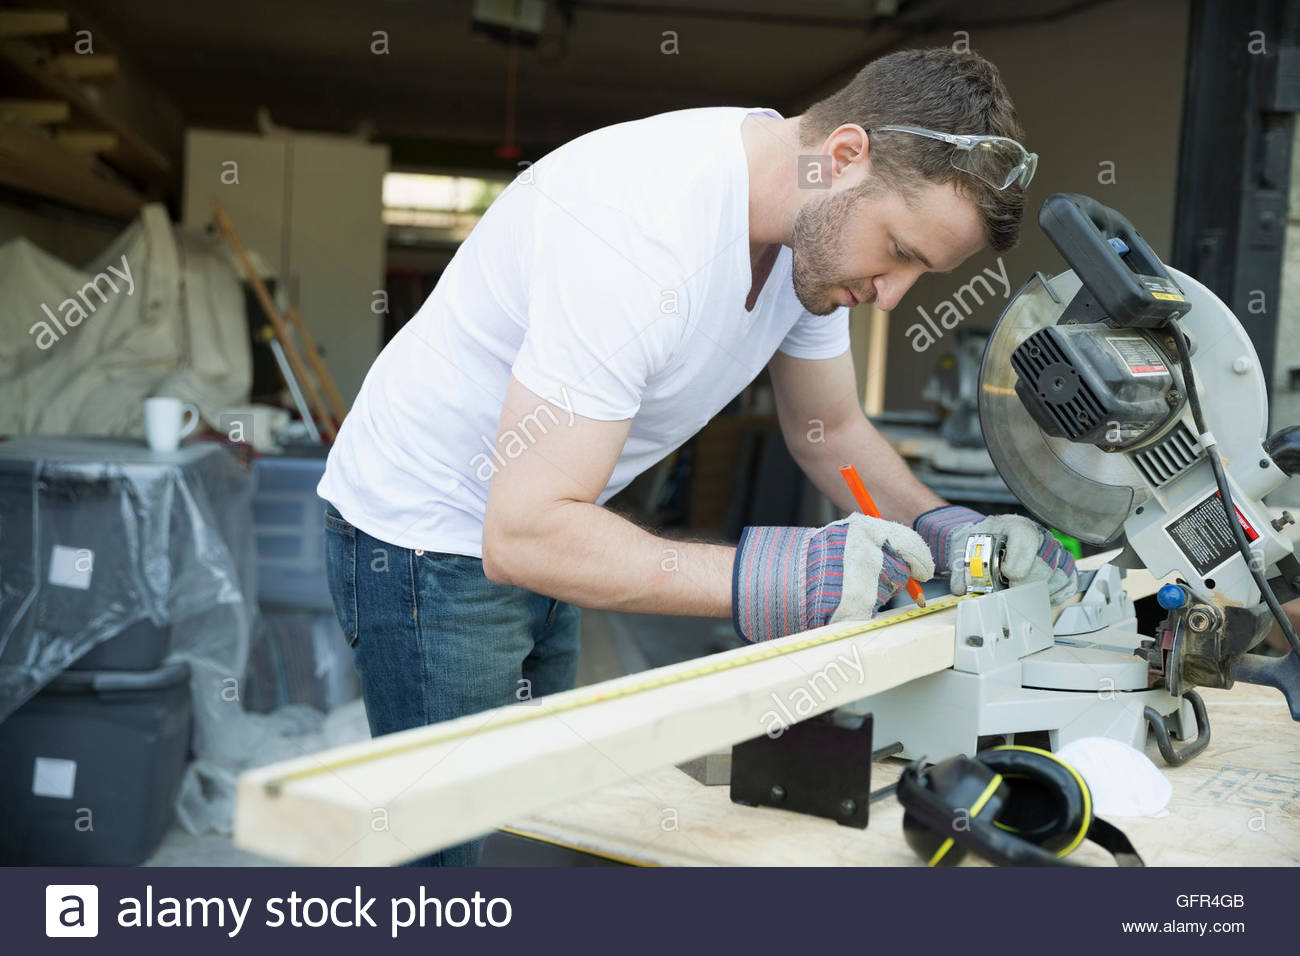 Man marking wood for home improvement project at table saw in driveway - Stock Image